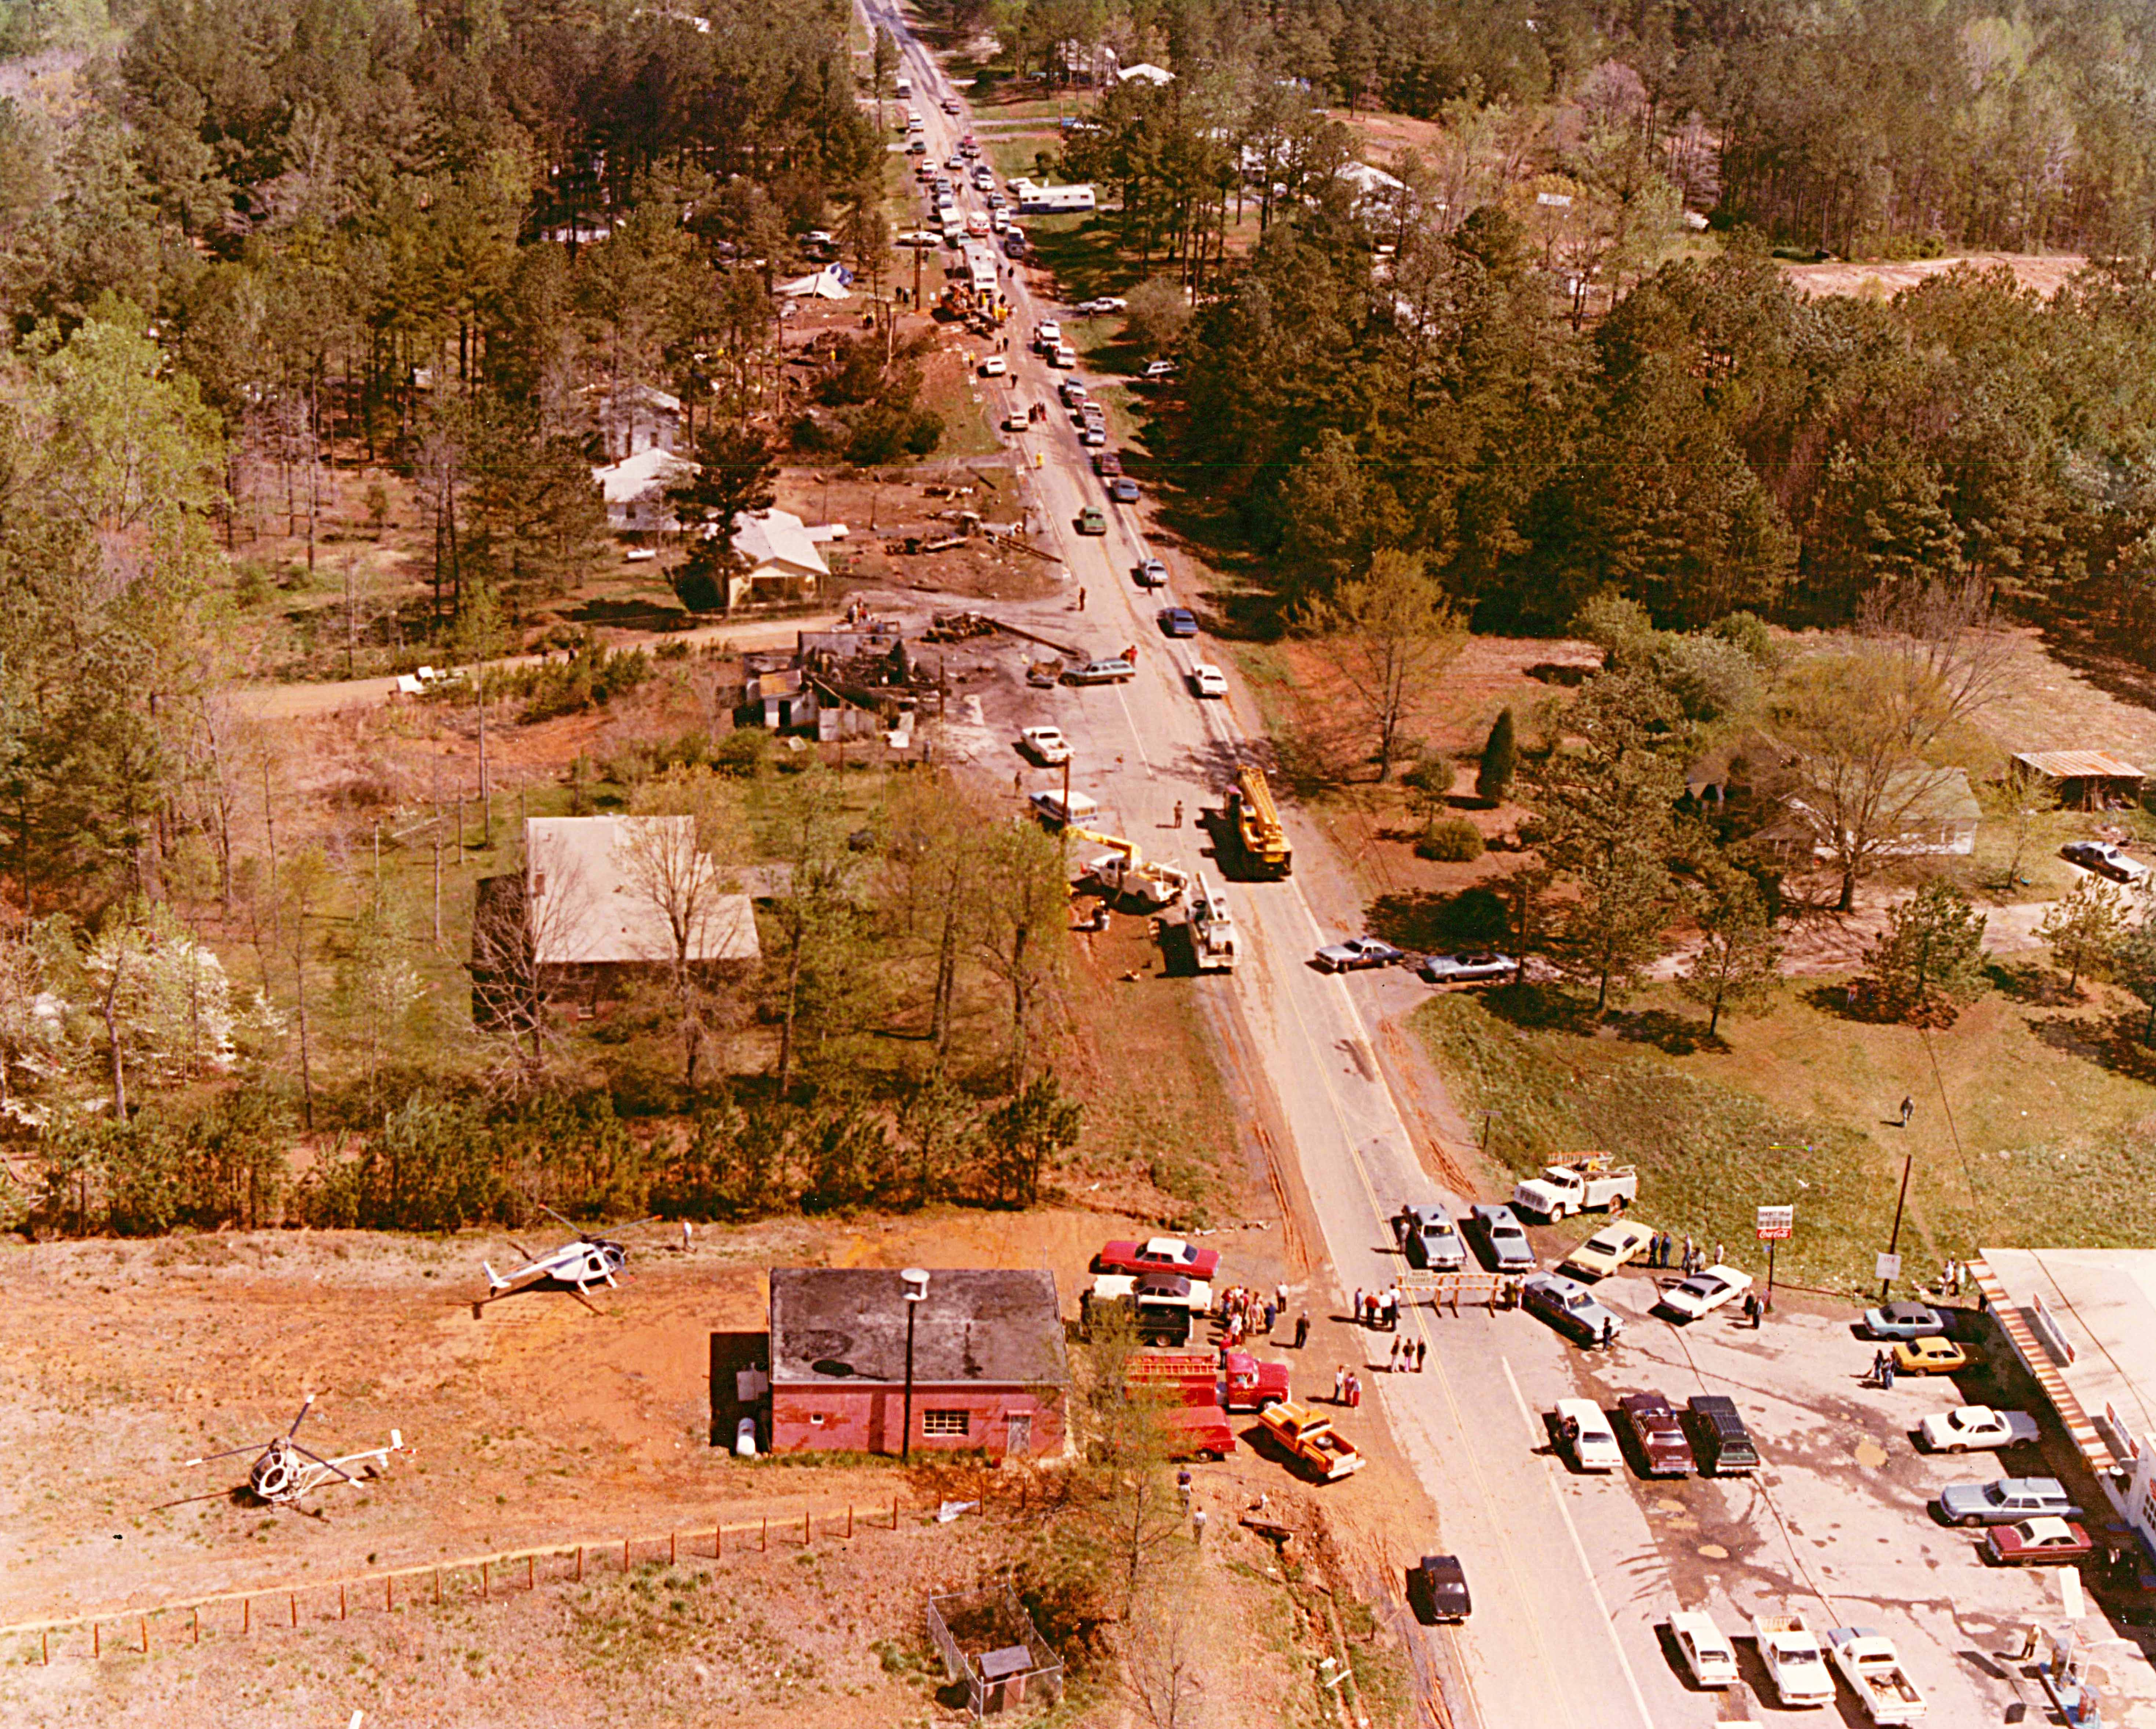 An Aerial View of the Southern Airways Flight 242 Crash Site in New